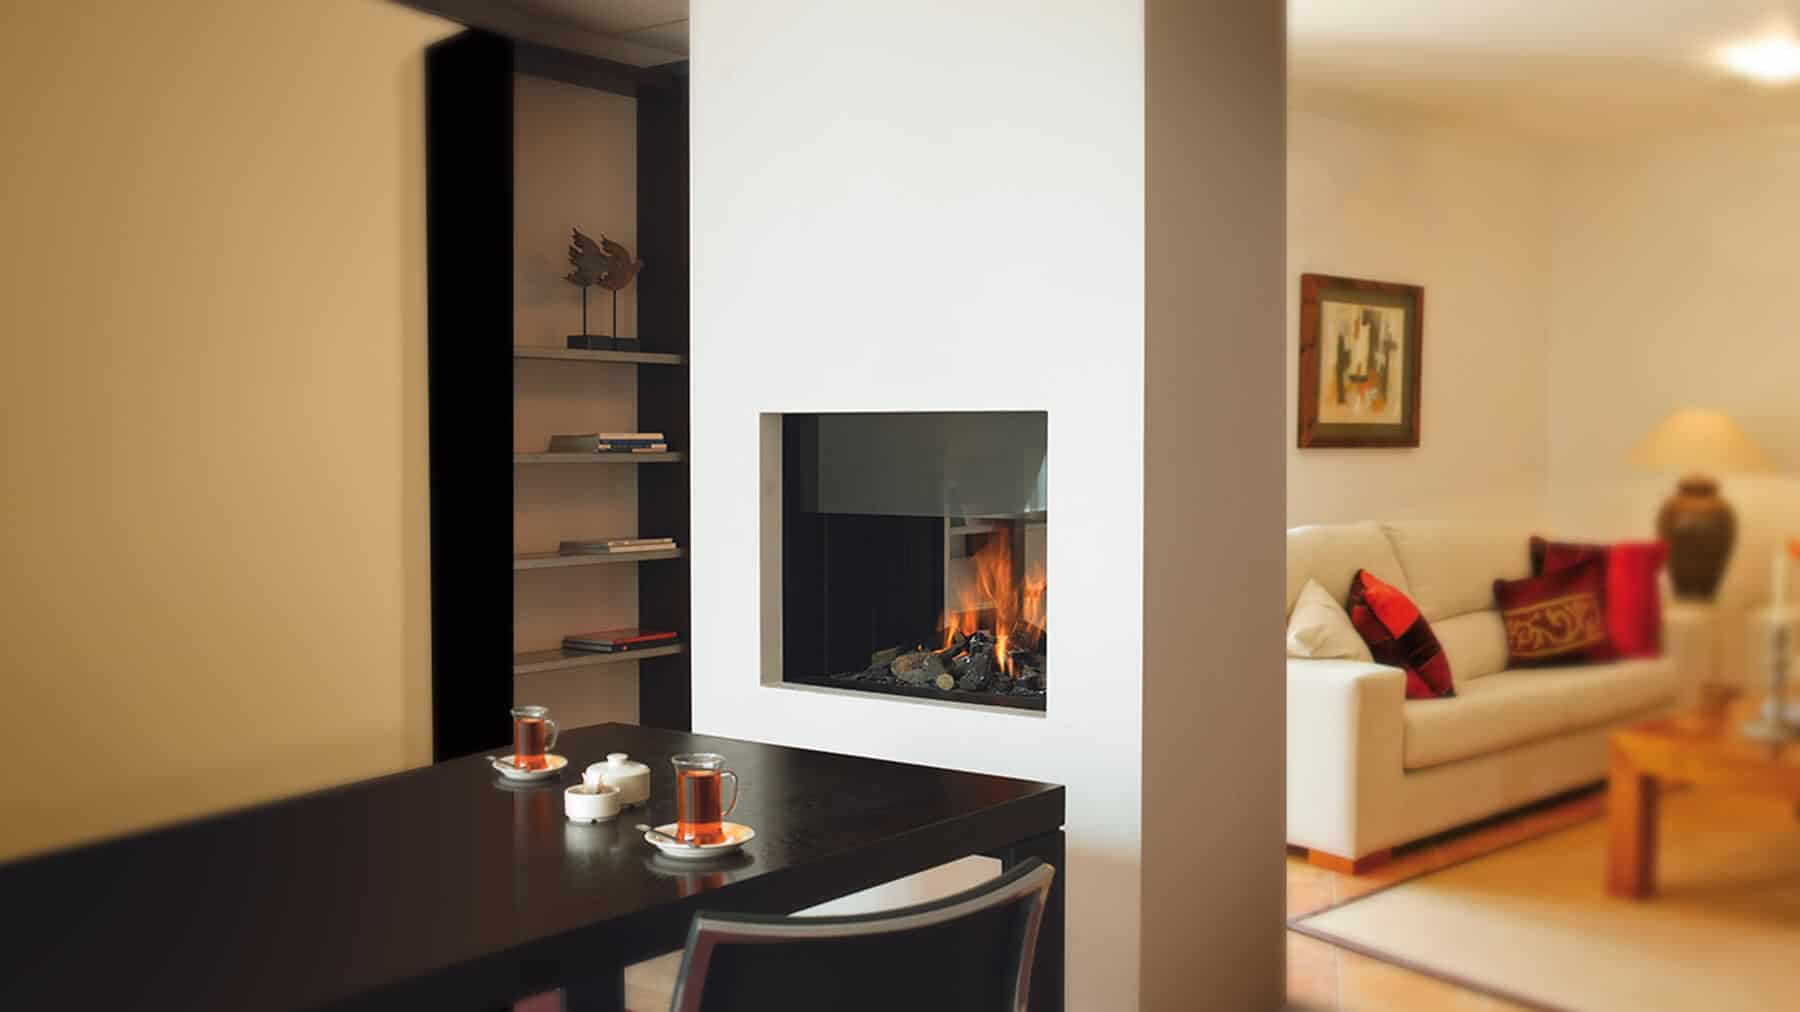 20 Functional DoubleSided Fireplaces For Your Spacious Home  Homesthetics  Inspiring ideas